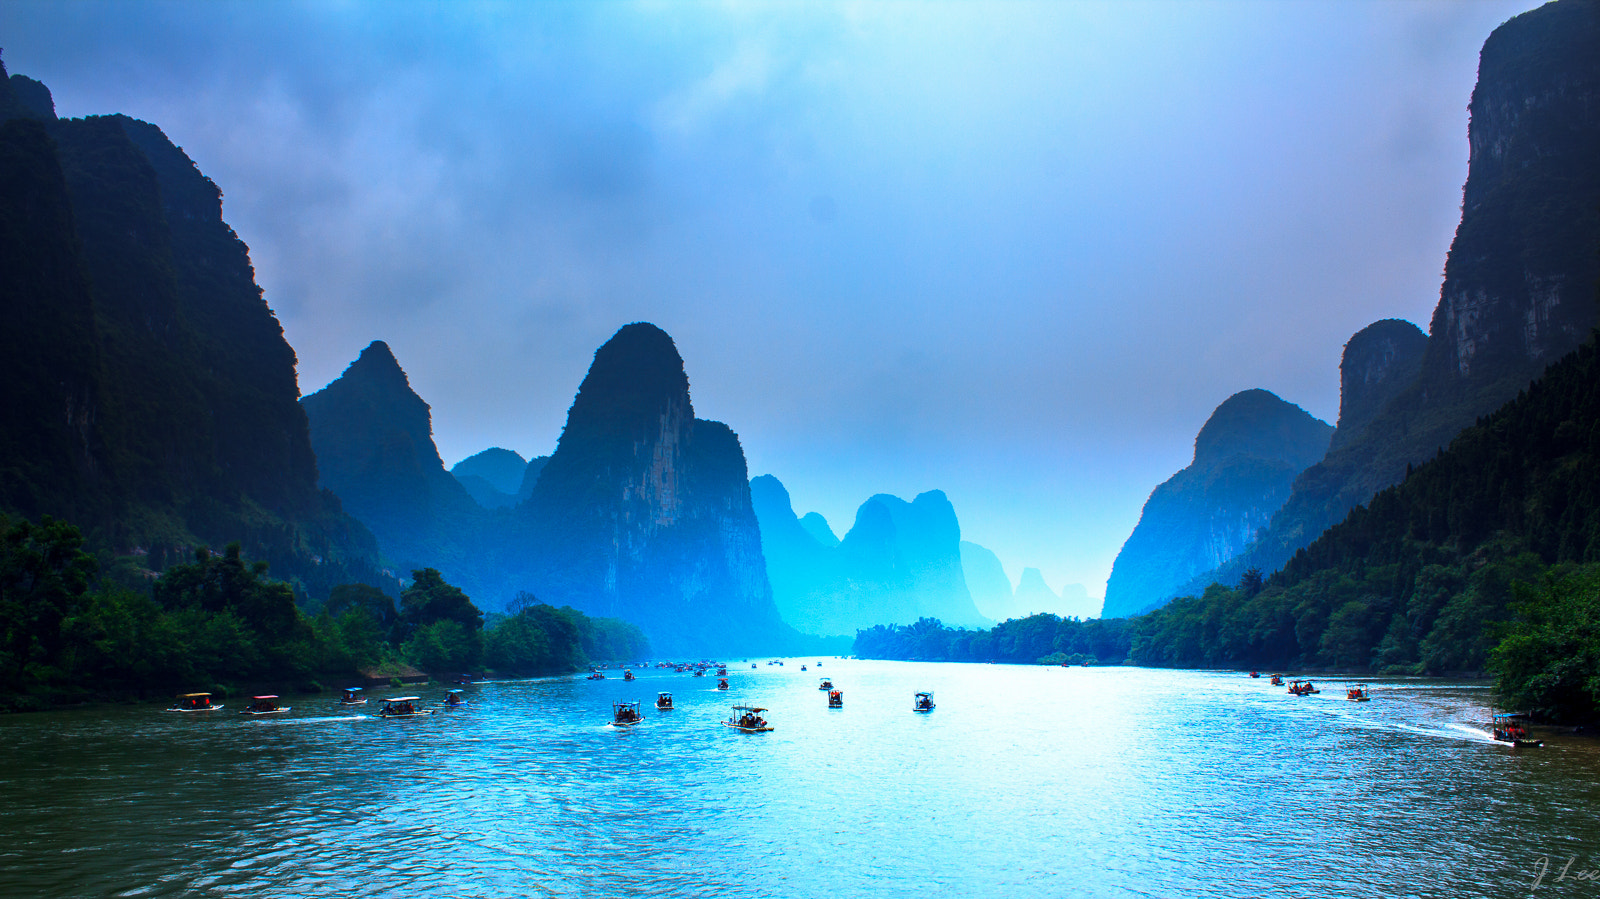 Photograph Guilin by James Lee on 500px